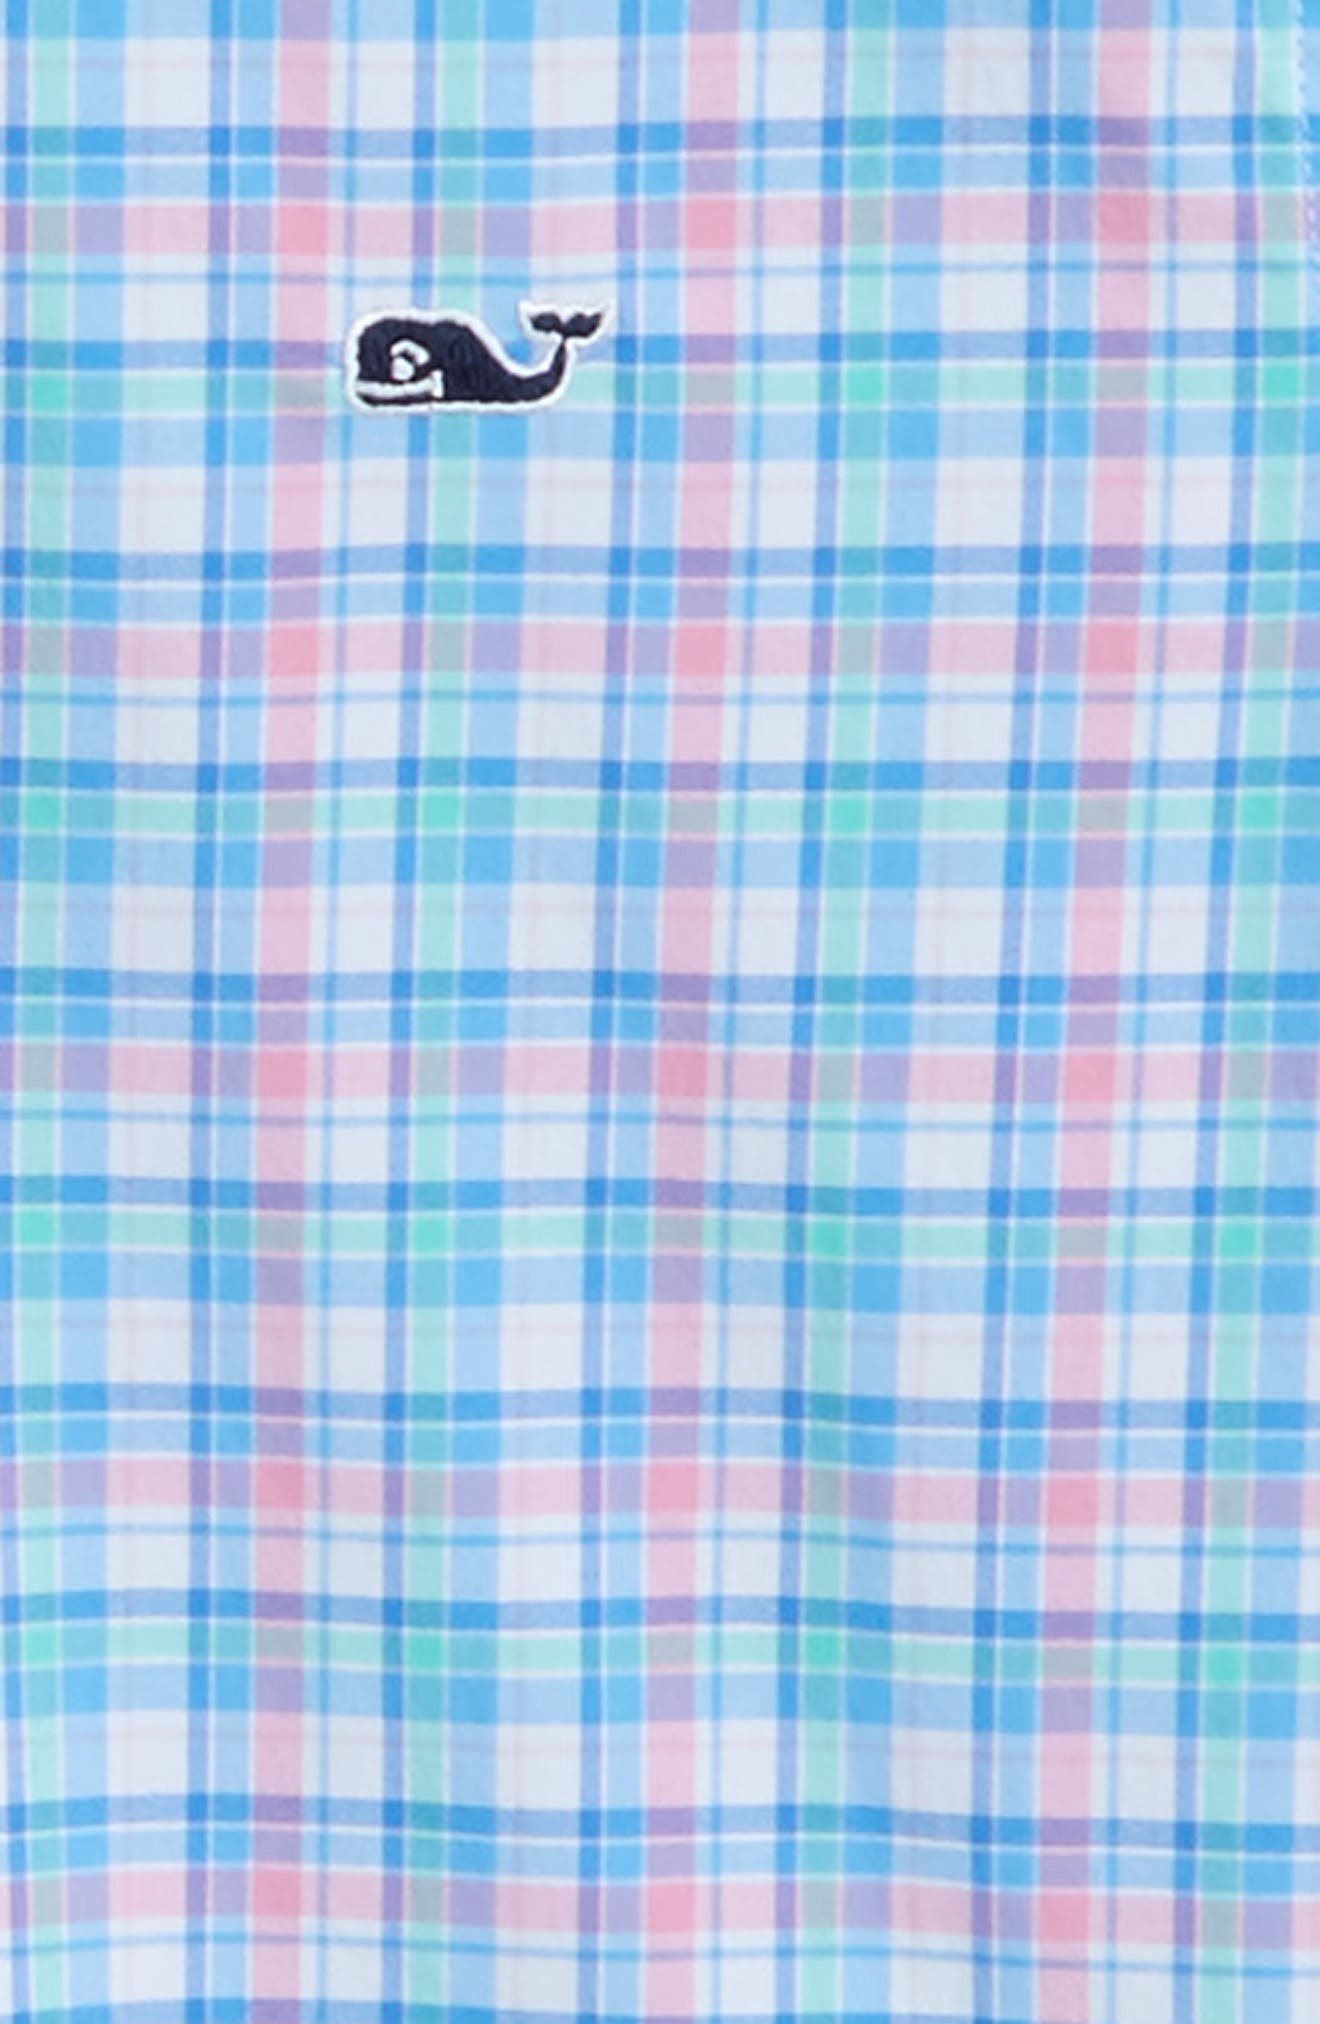 Sheltered Cove Plaid Whale Shirt,                             Alternate thumbnail 2, color,                             650